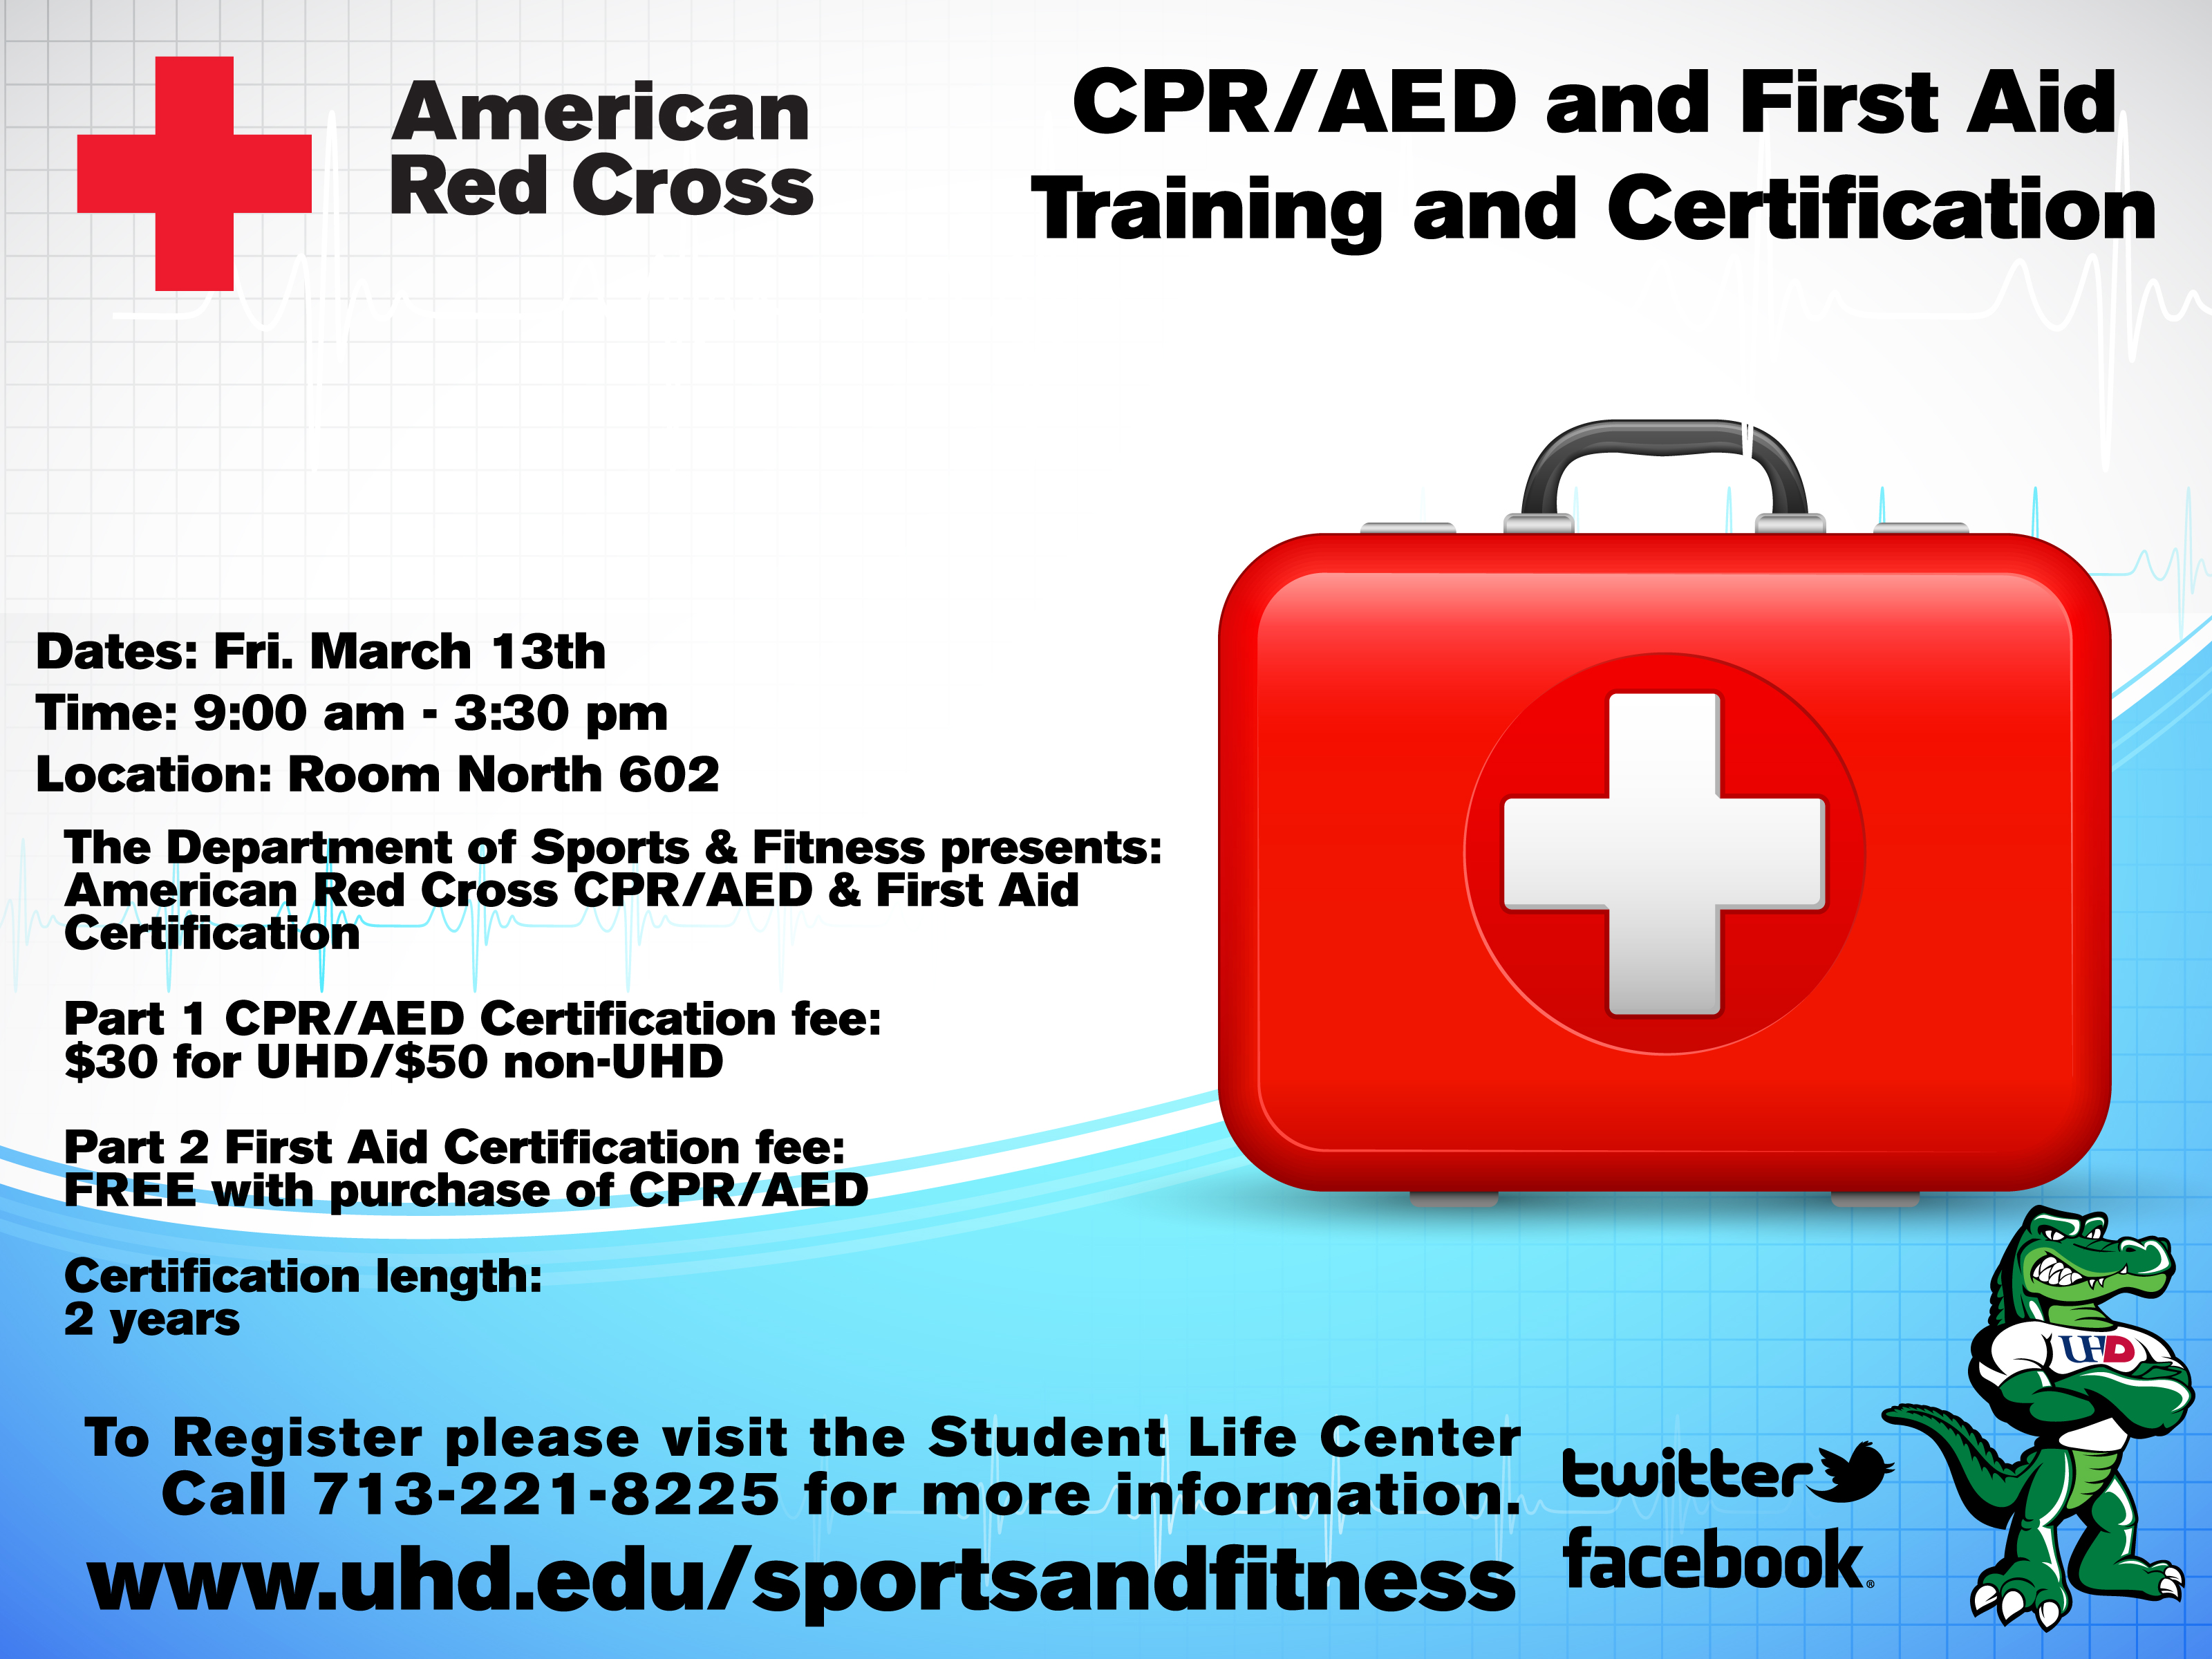 On Campus Cpr First Aid Training Offered March 13